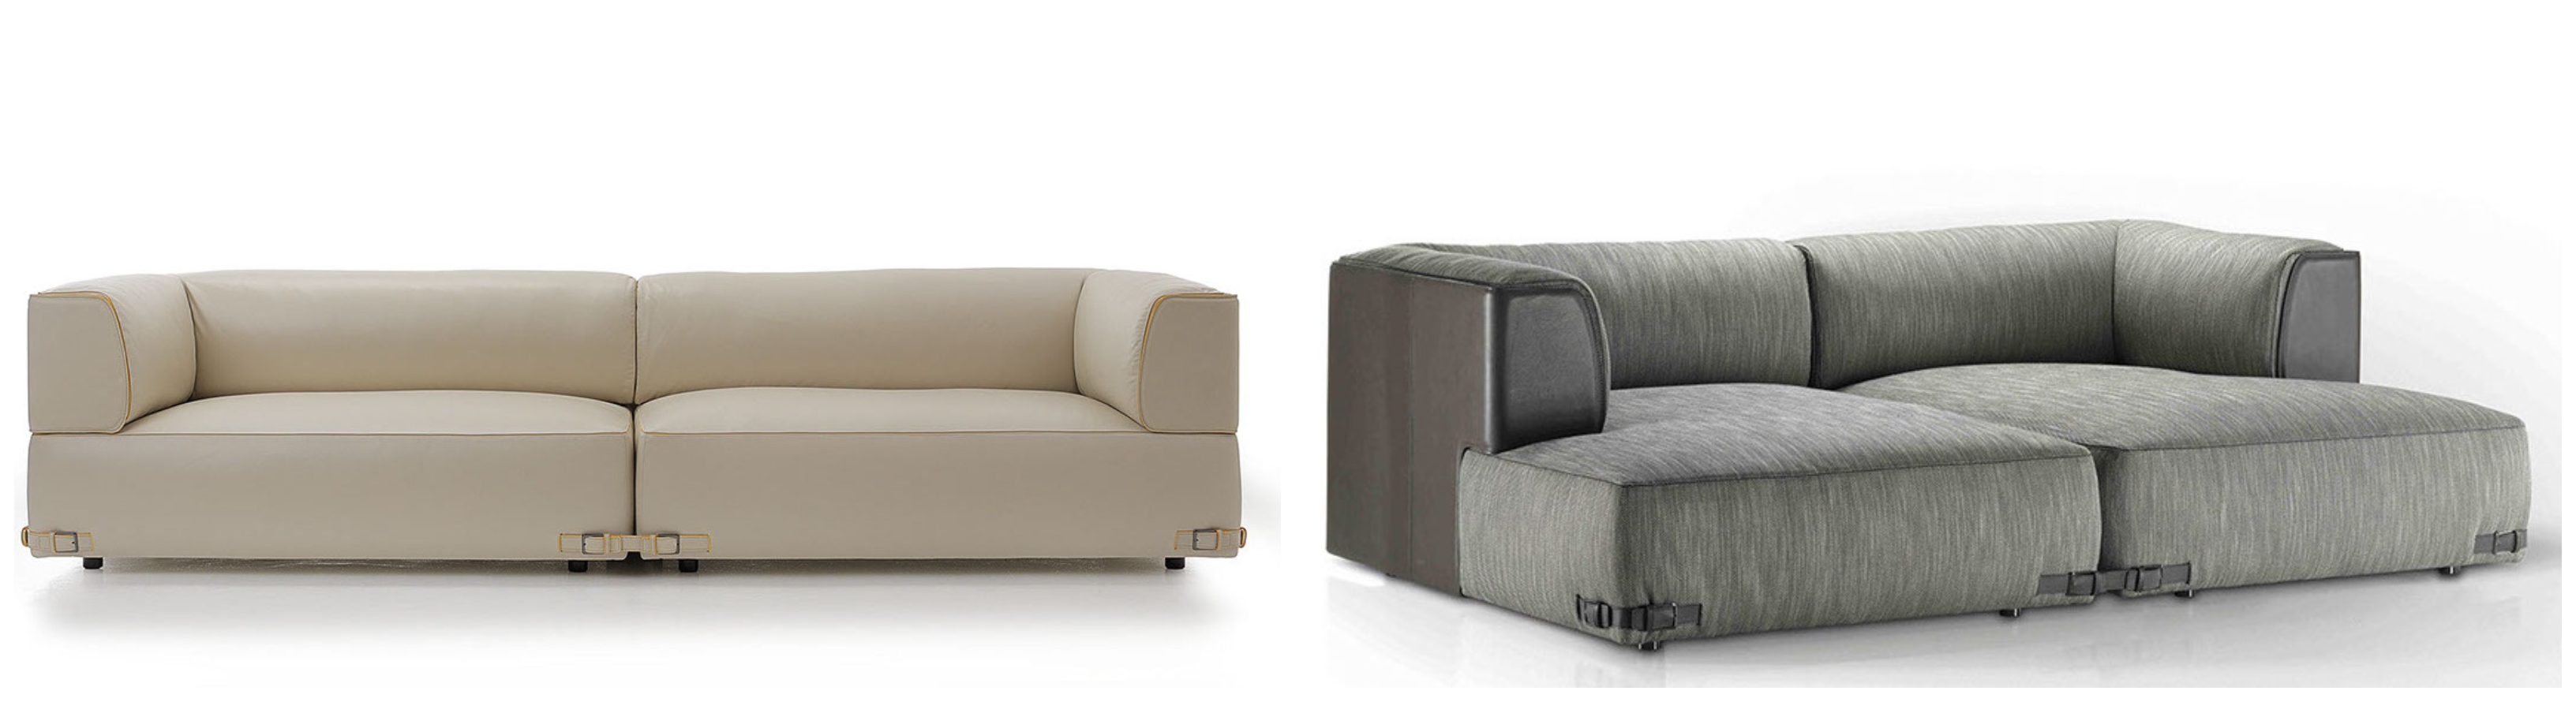 The Soho sofa is characterized by an elegant structure that wraps around the maxi cushions, conveying an unique atmosphere of comfort and refinement. The leather buckle straps are aesthetic details yet functional connectors between the elements, celebrating the FENDI's highest expertise in leather workmanship.